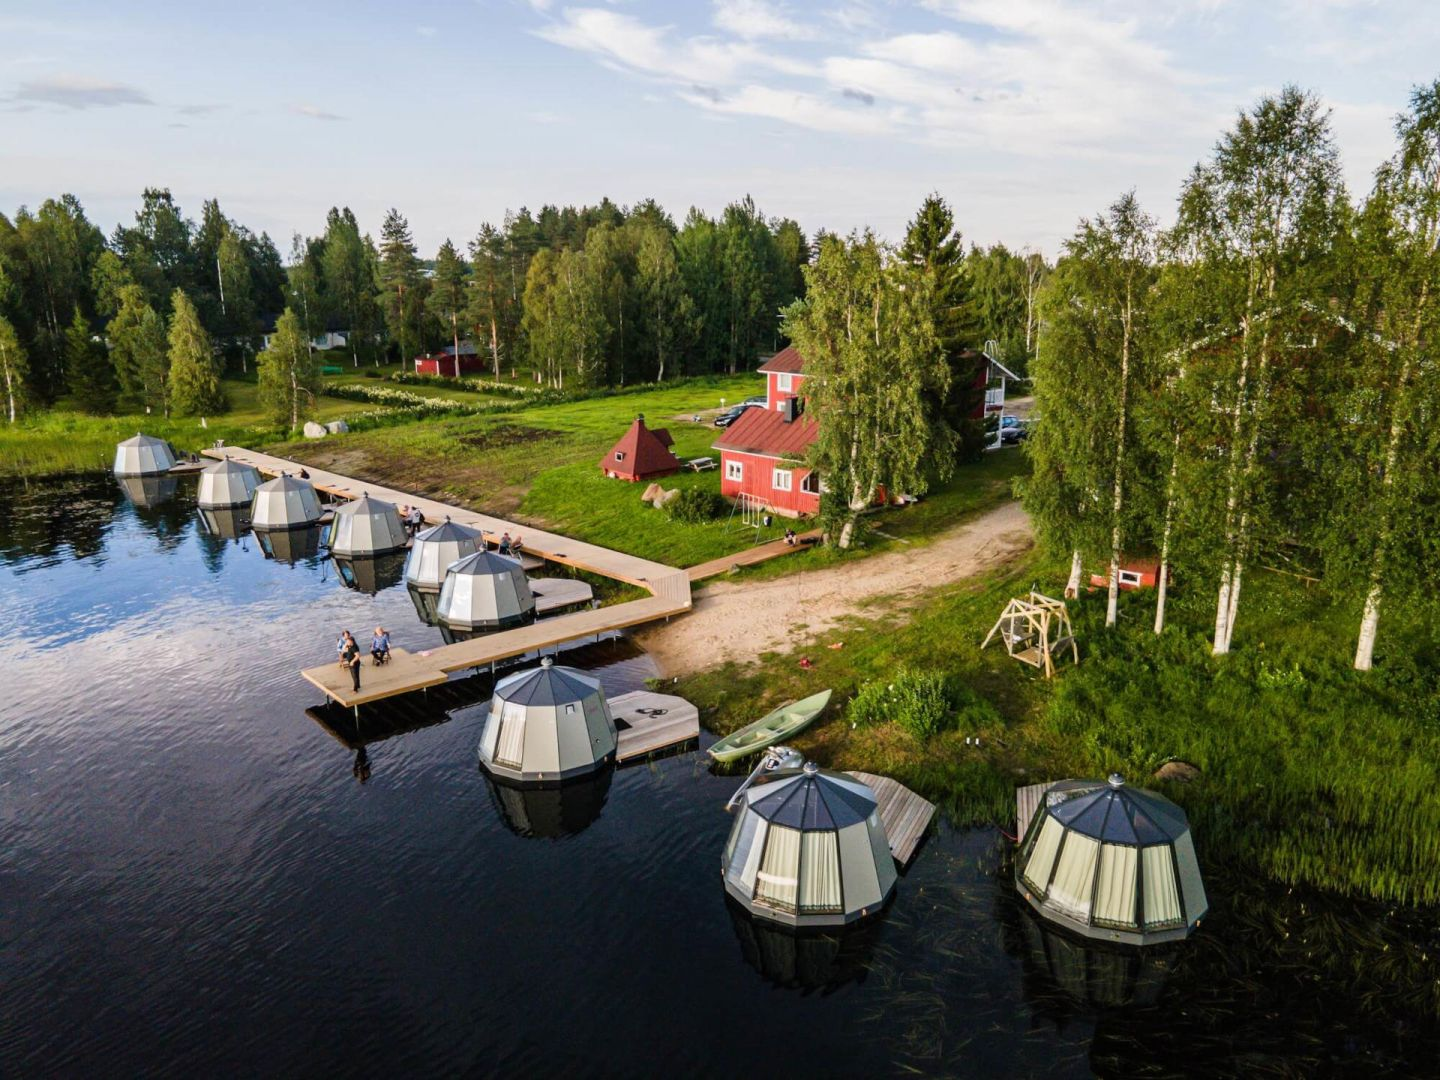 Arctic Guesthouse & Igloos in Ranua, Finland, a special summer accommodation in Lapland